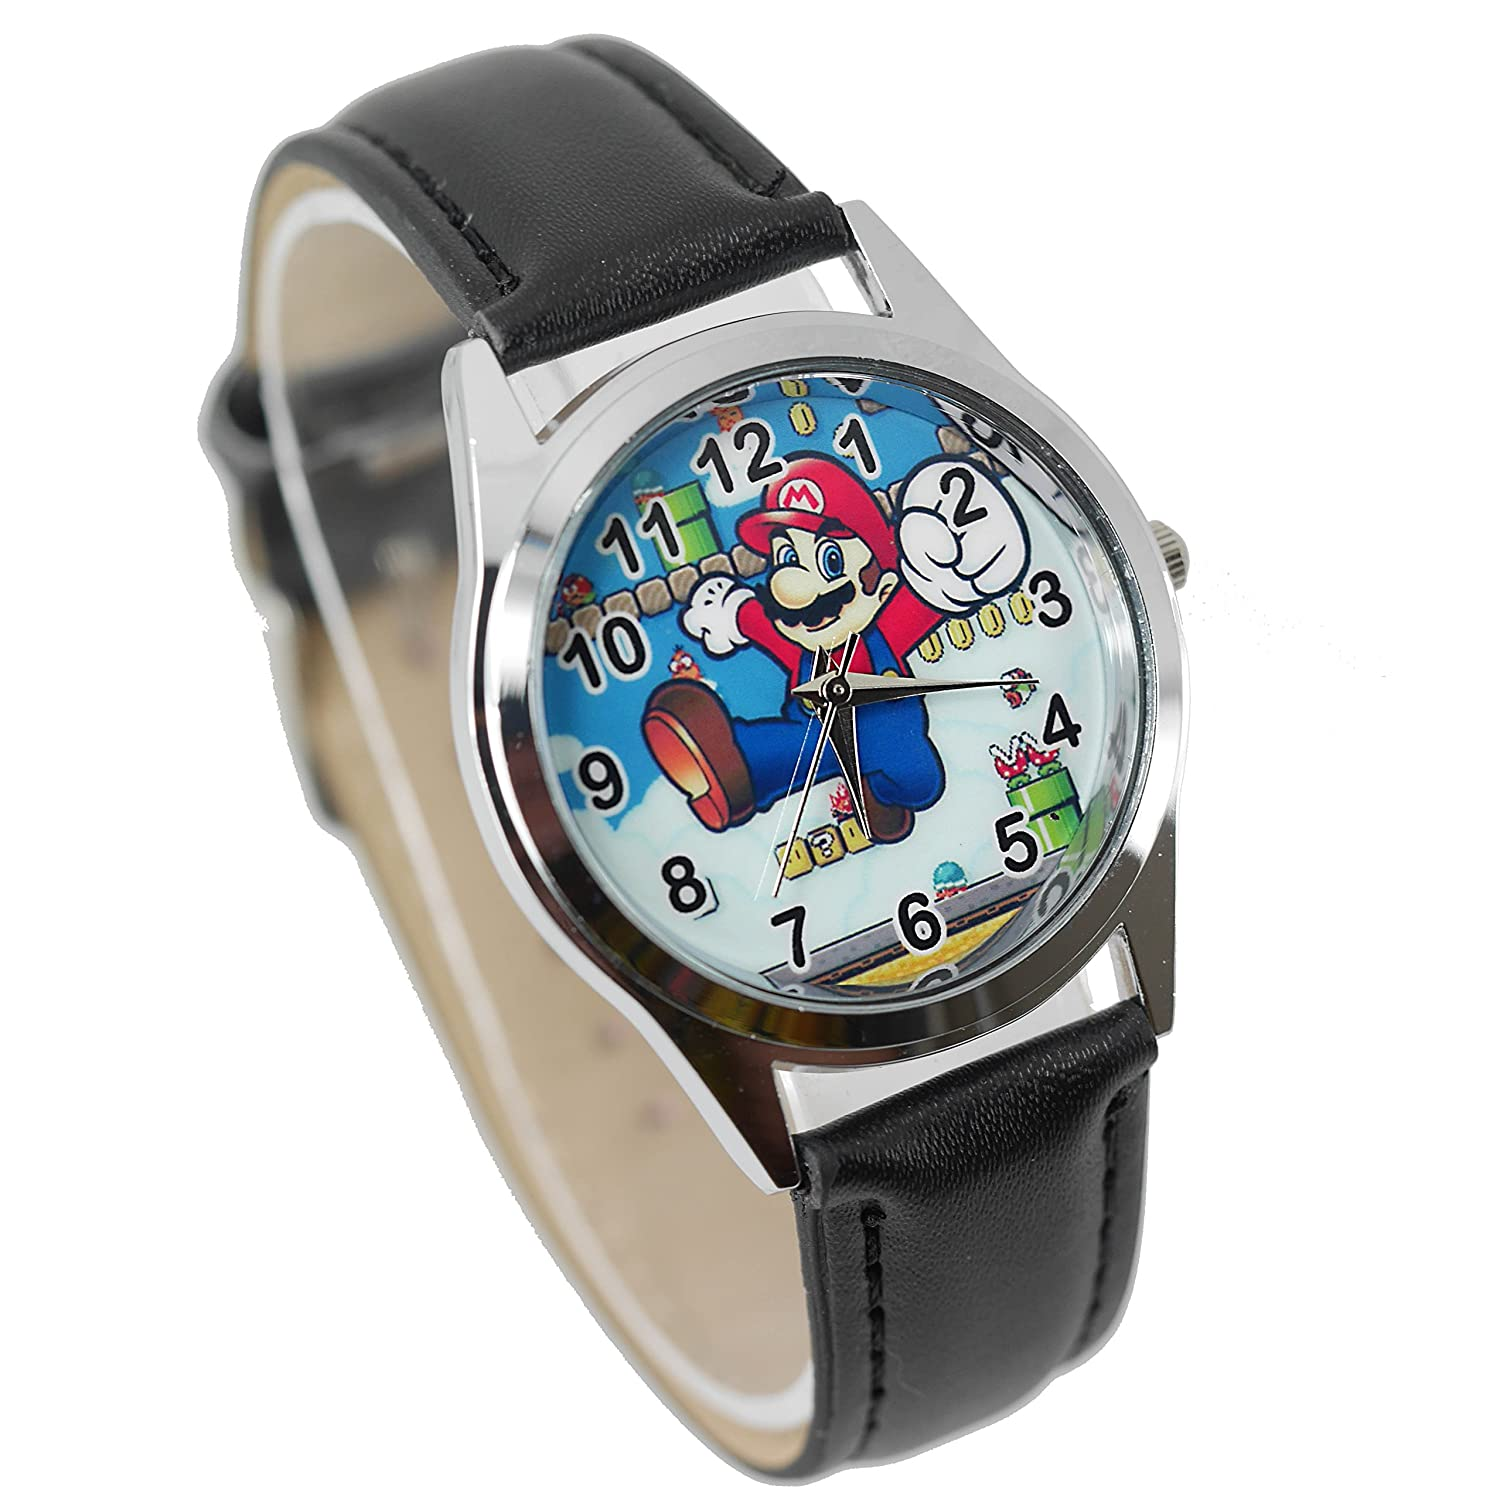 Amazon.com: TAPORT Mario Quartz Watch Leather Band + Spare Battery + Gift Bag Black: Watches